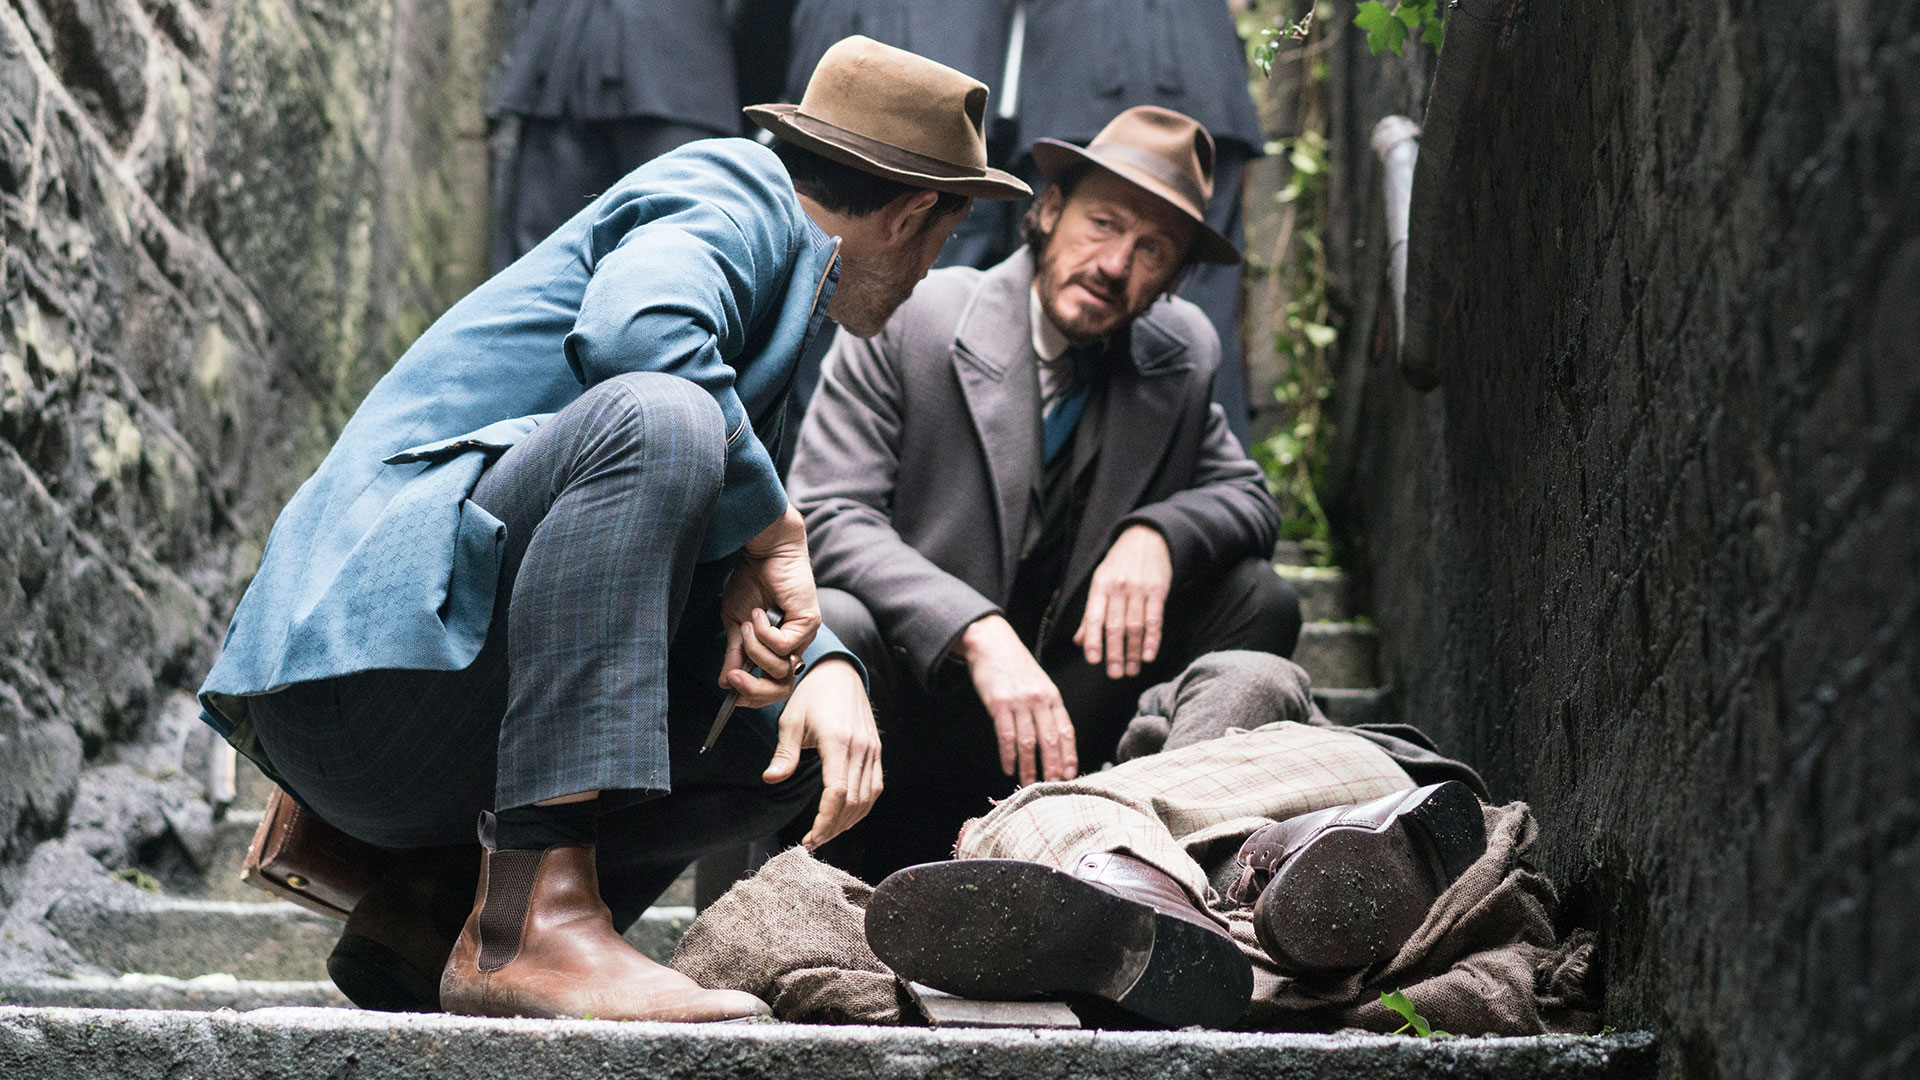 Drake and Jackson examine the body of Thomas Gower in season 4 episode 6 of Ripper Street